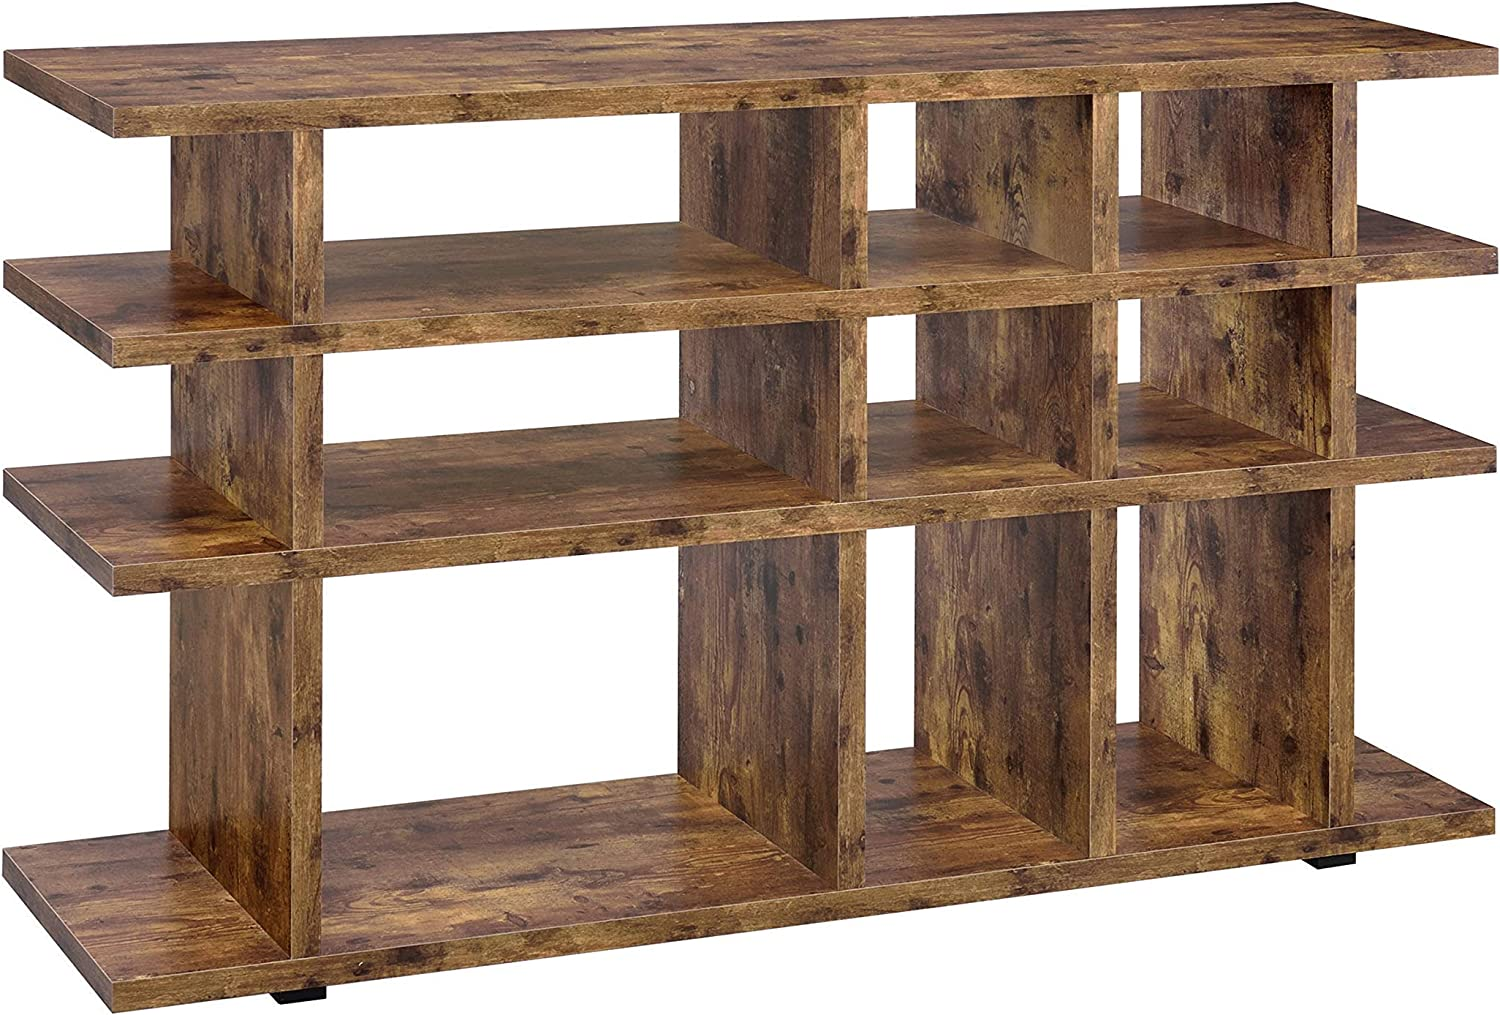 Coaster Home Safety and trust Furnishings 3-Tier Bookcase Antique Max 87% OFF She Nutmeg Open